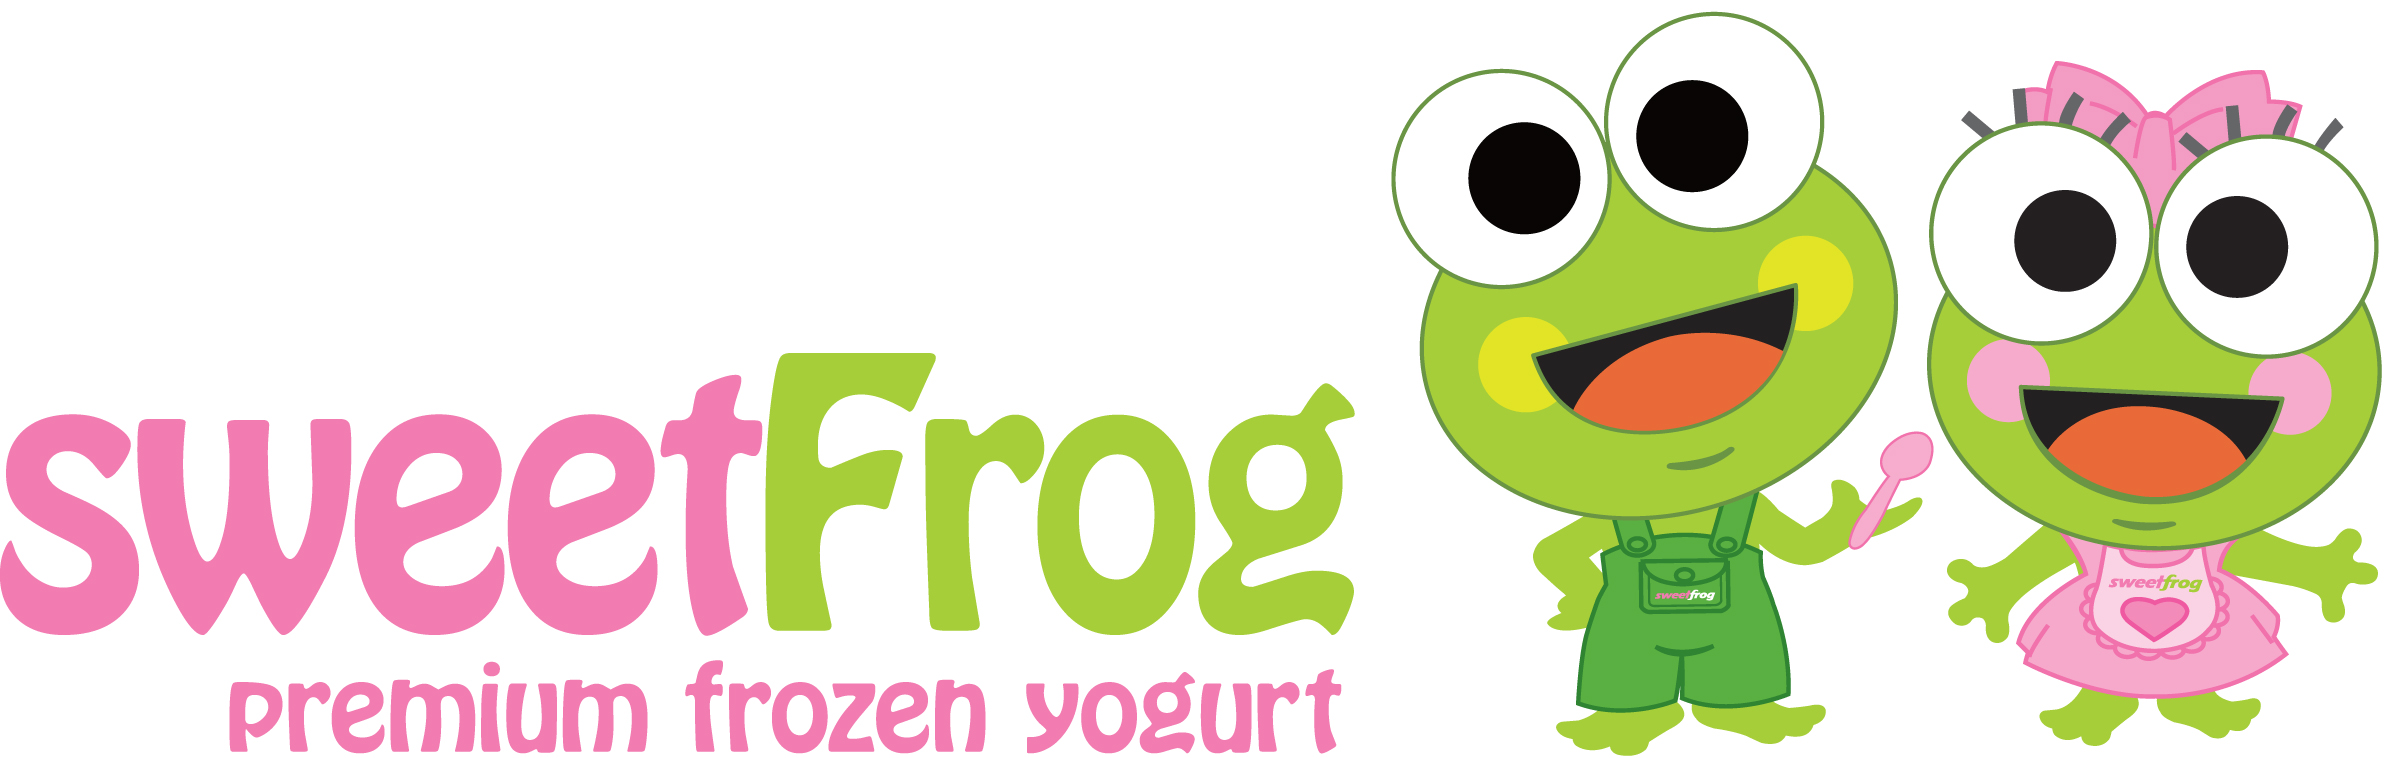 Sweet_Frog_-_Premium_Frozen_Yogurt_logo_